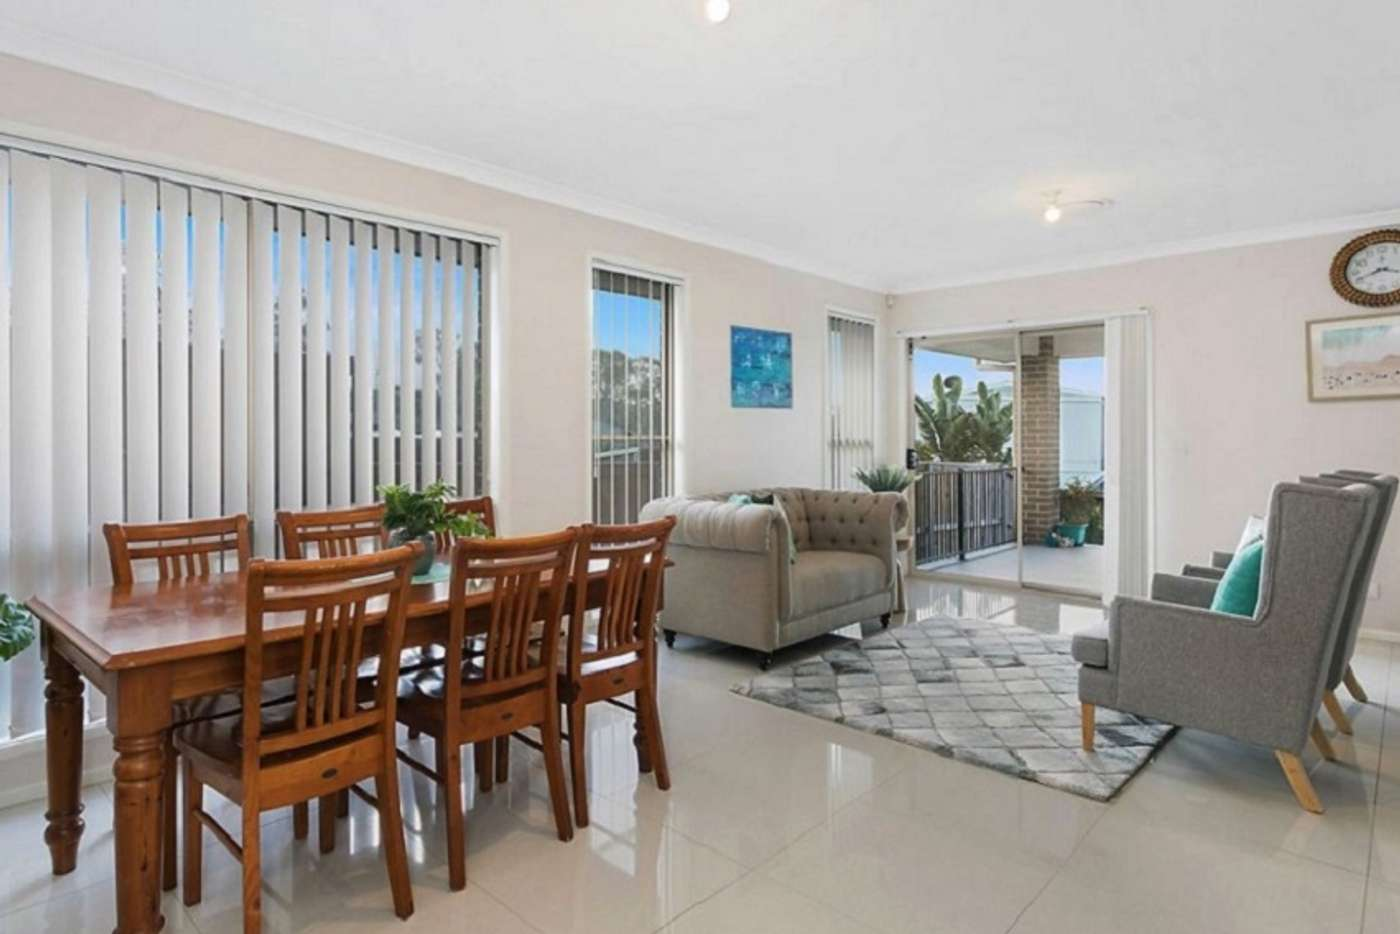 Fifth view of Homely house listing, 44 Schoffel street, Riverstone NSW 2765